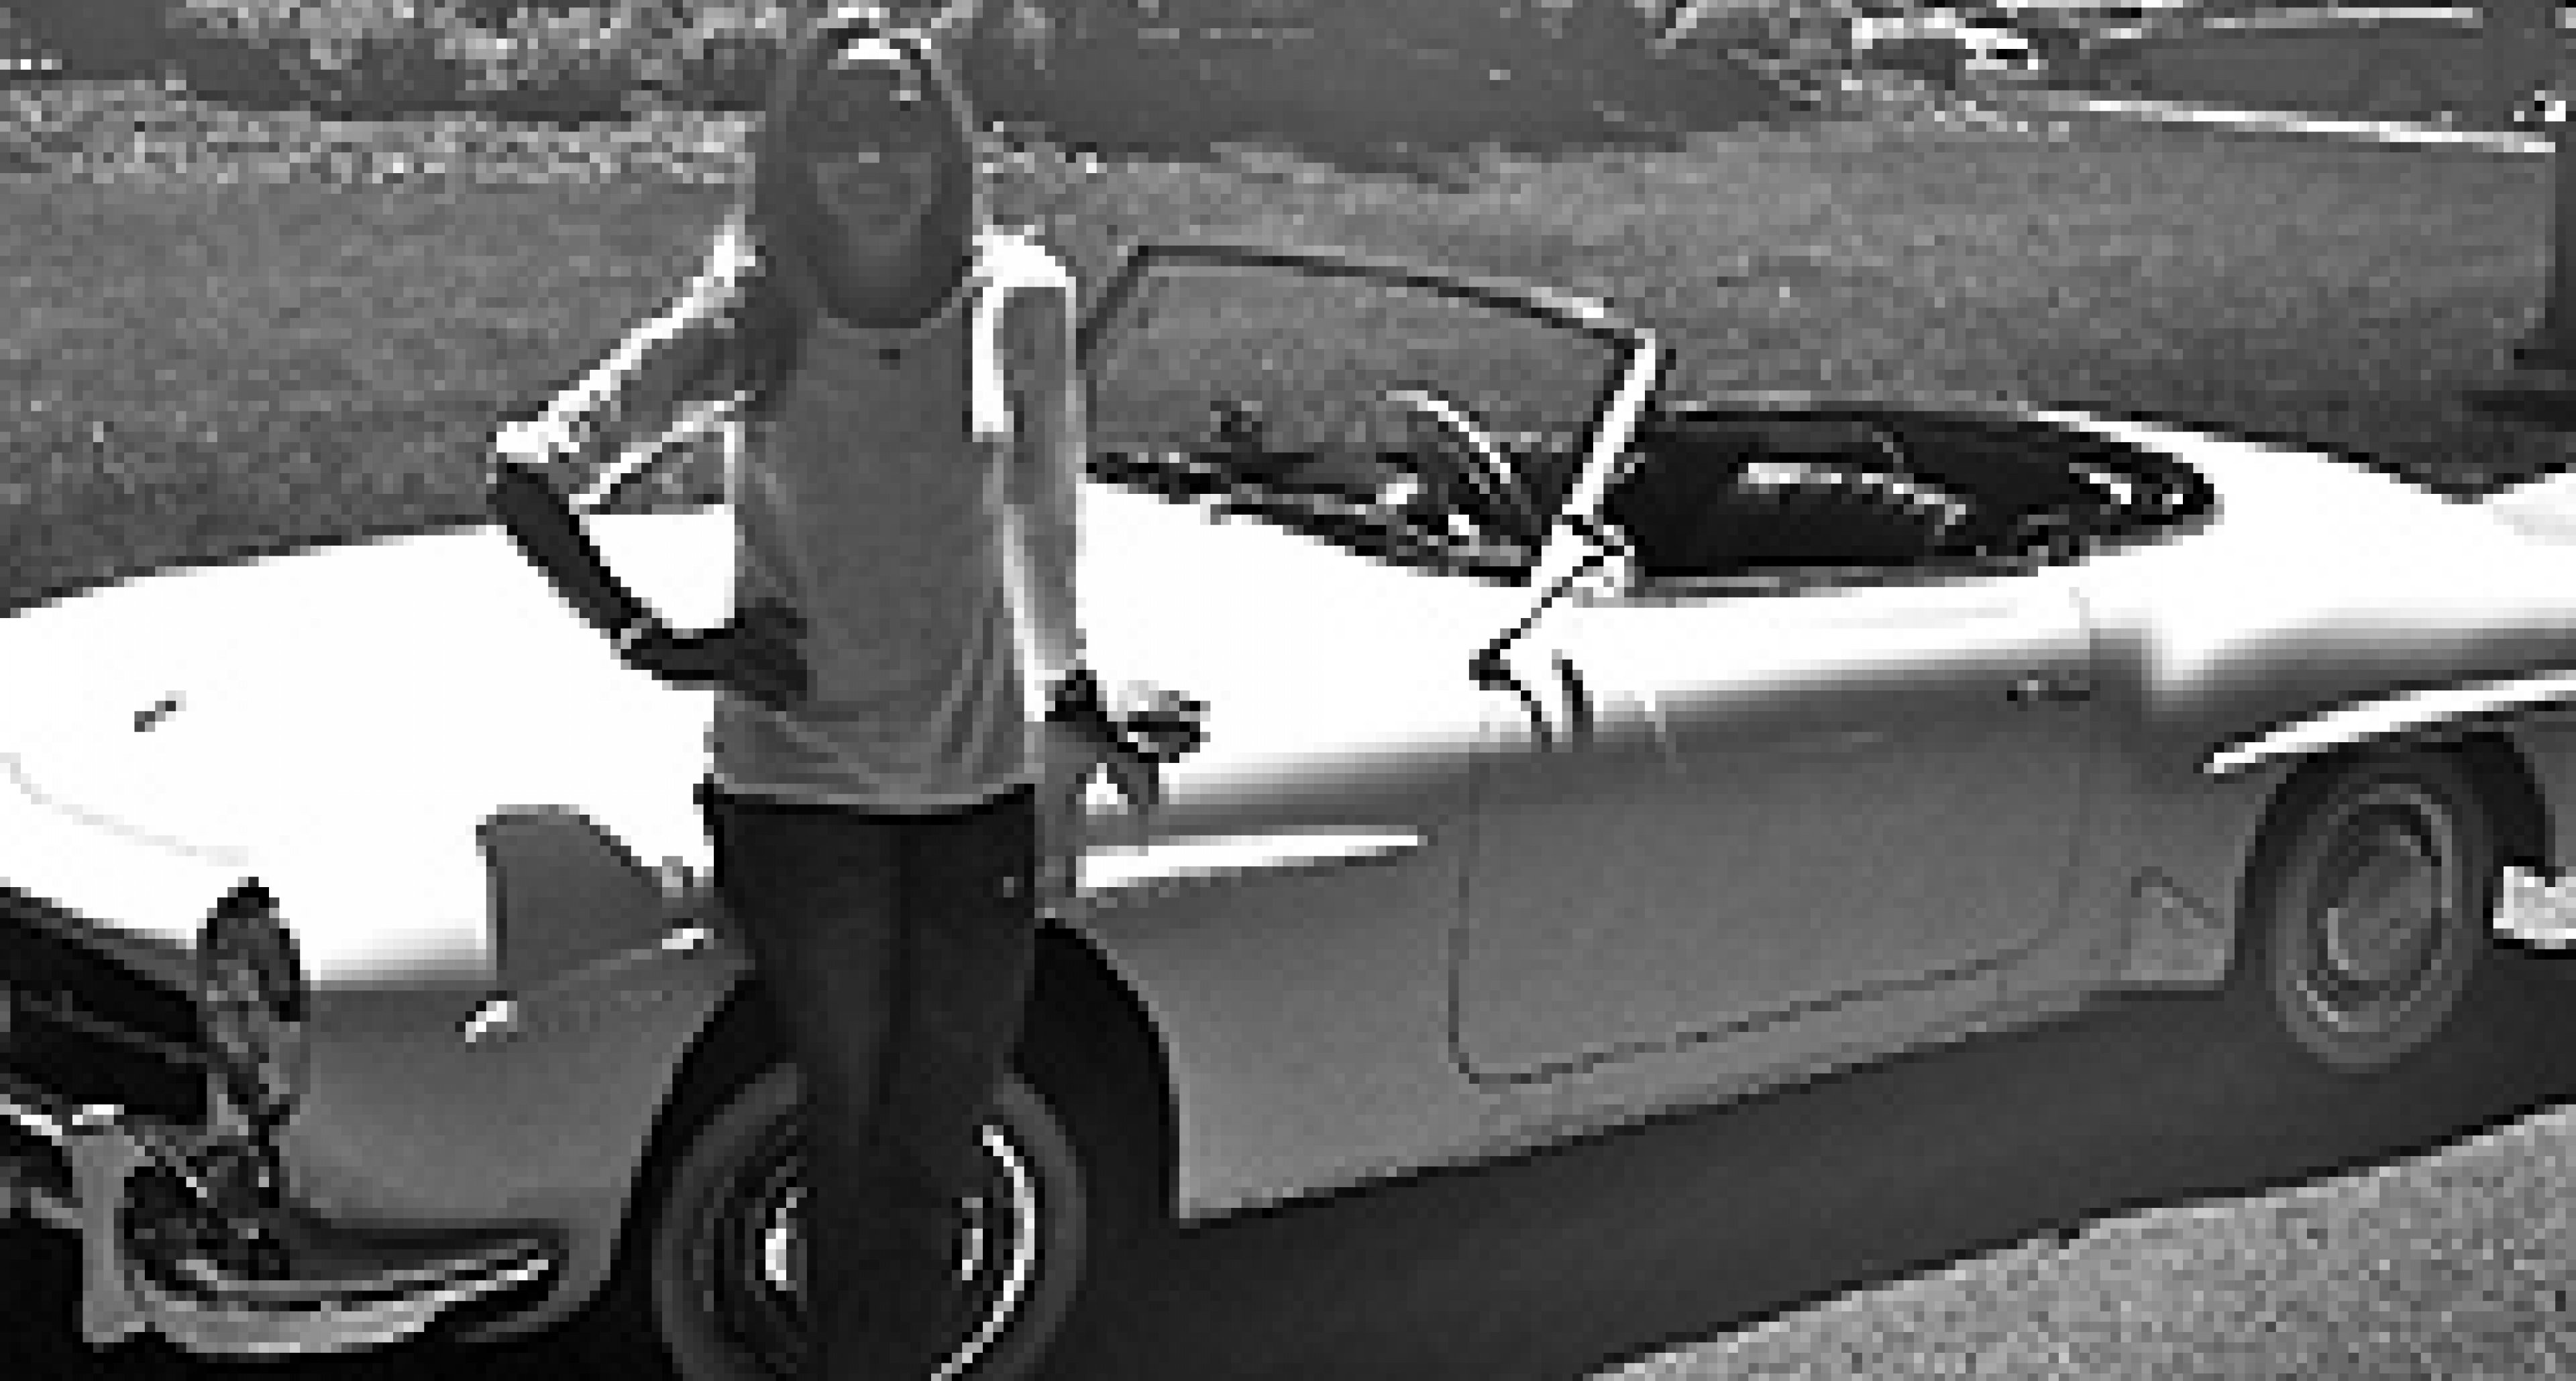 Gooding & Company to auction Sheryl Crow's Mercedes 190 SL in aid of Joplin tornado victims